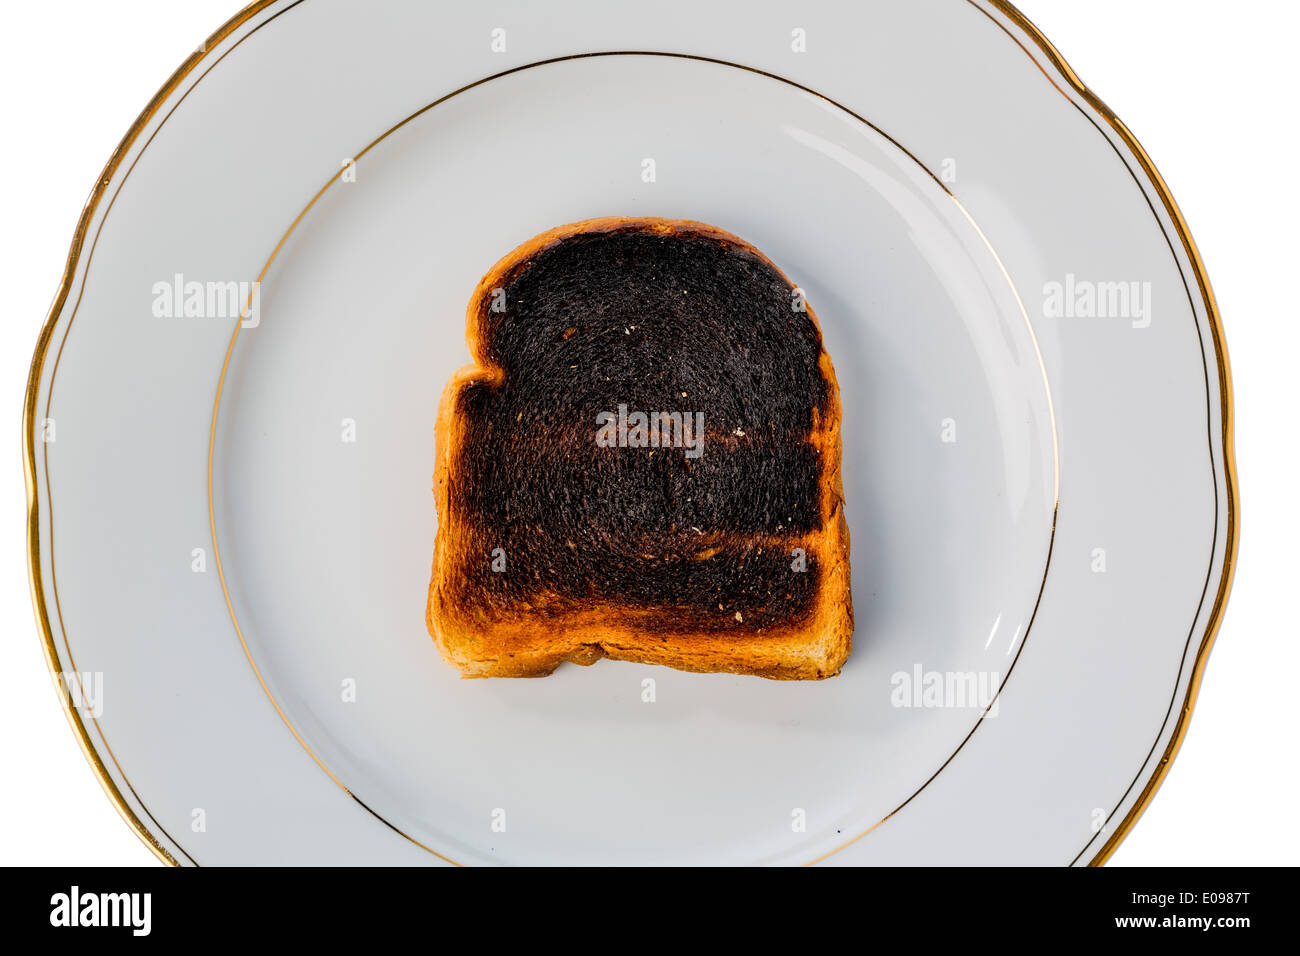 Toast bread became with drink a toast burntly. Burntly toast discs with the breakfast., Toastbrot wurde beim toasten verbrannt. Stock Photo